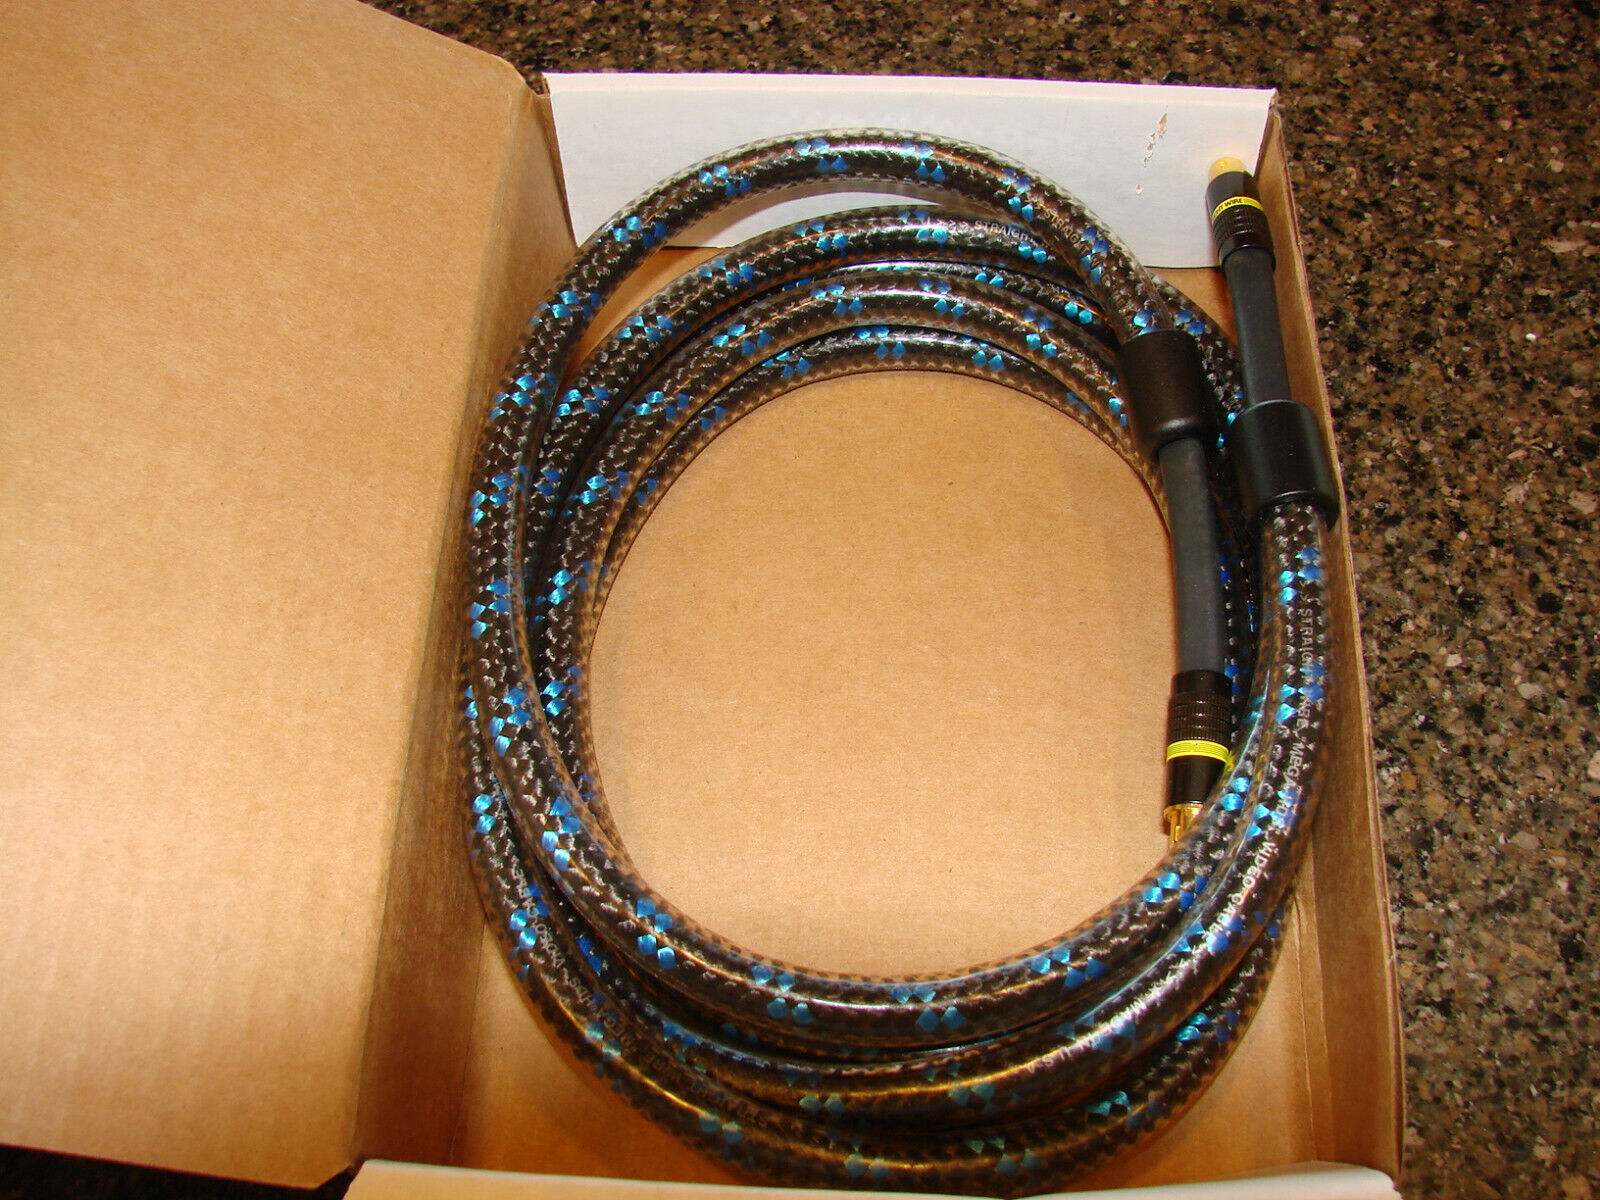 Straight Wire Mega HDS S-Video Cable, 3M New In Box - $37.99